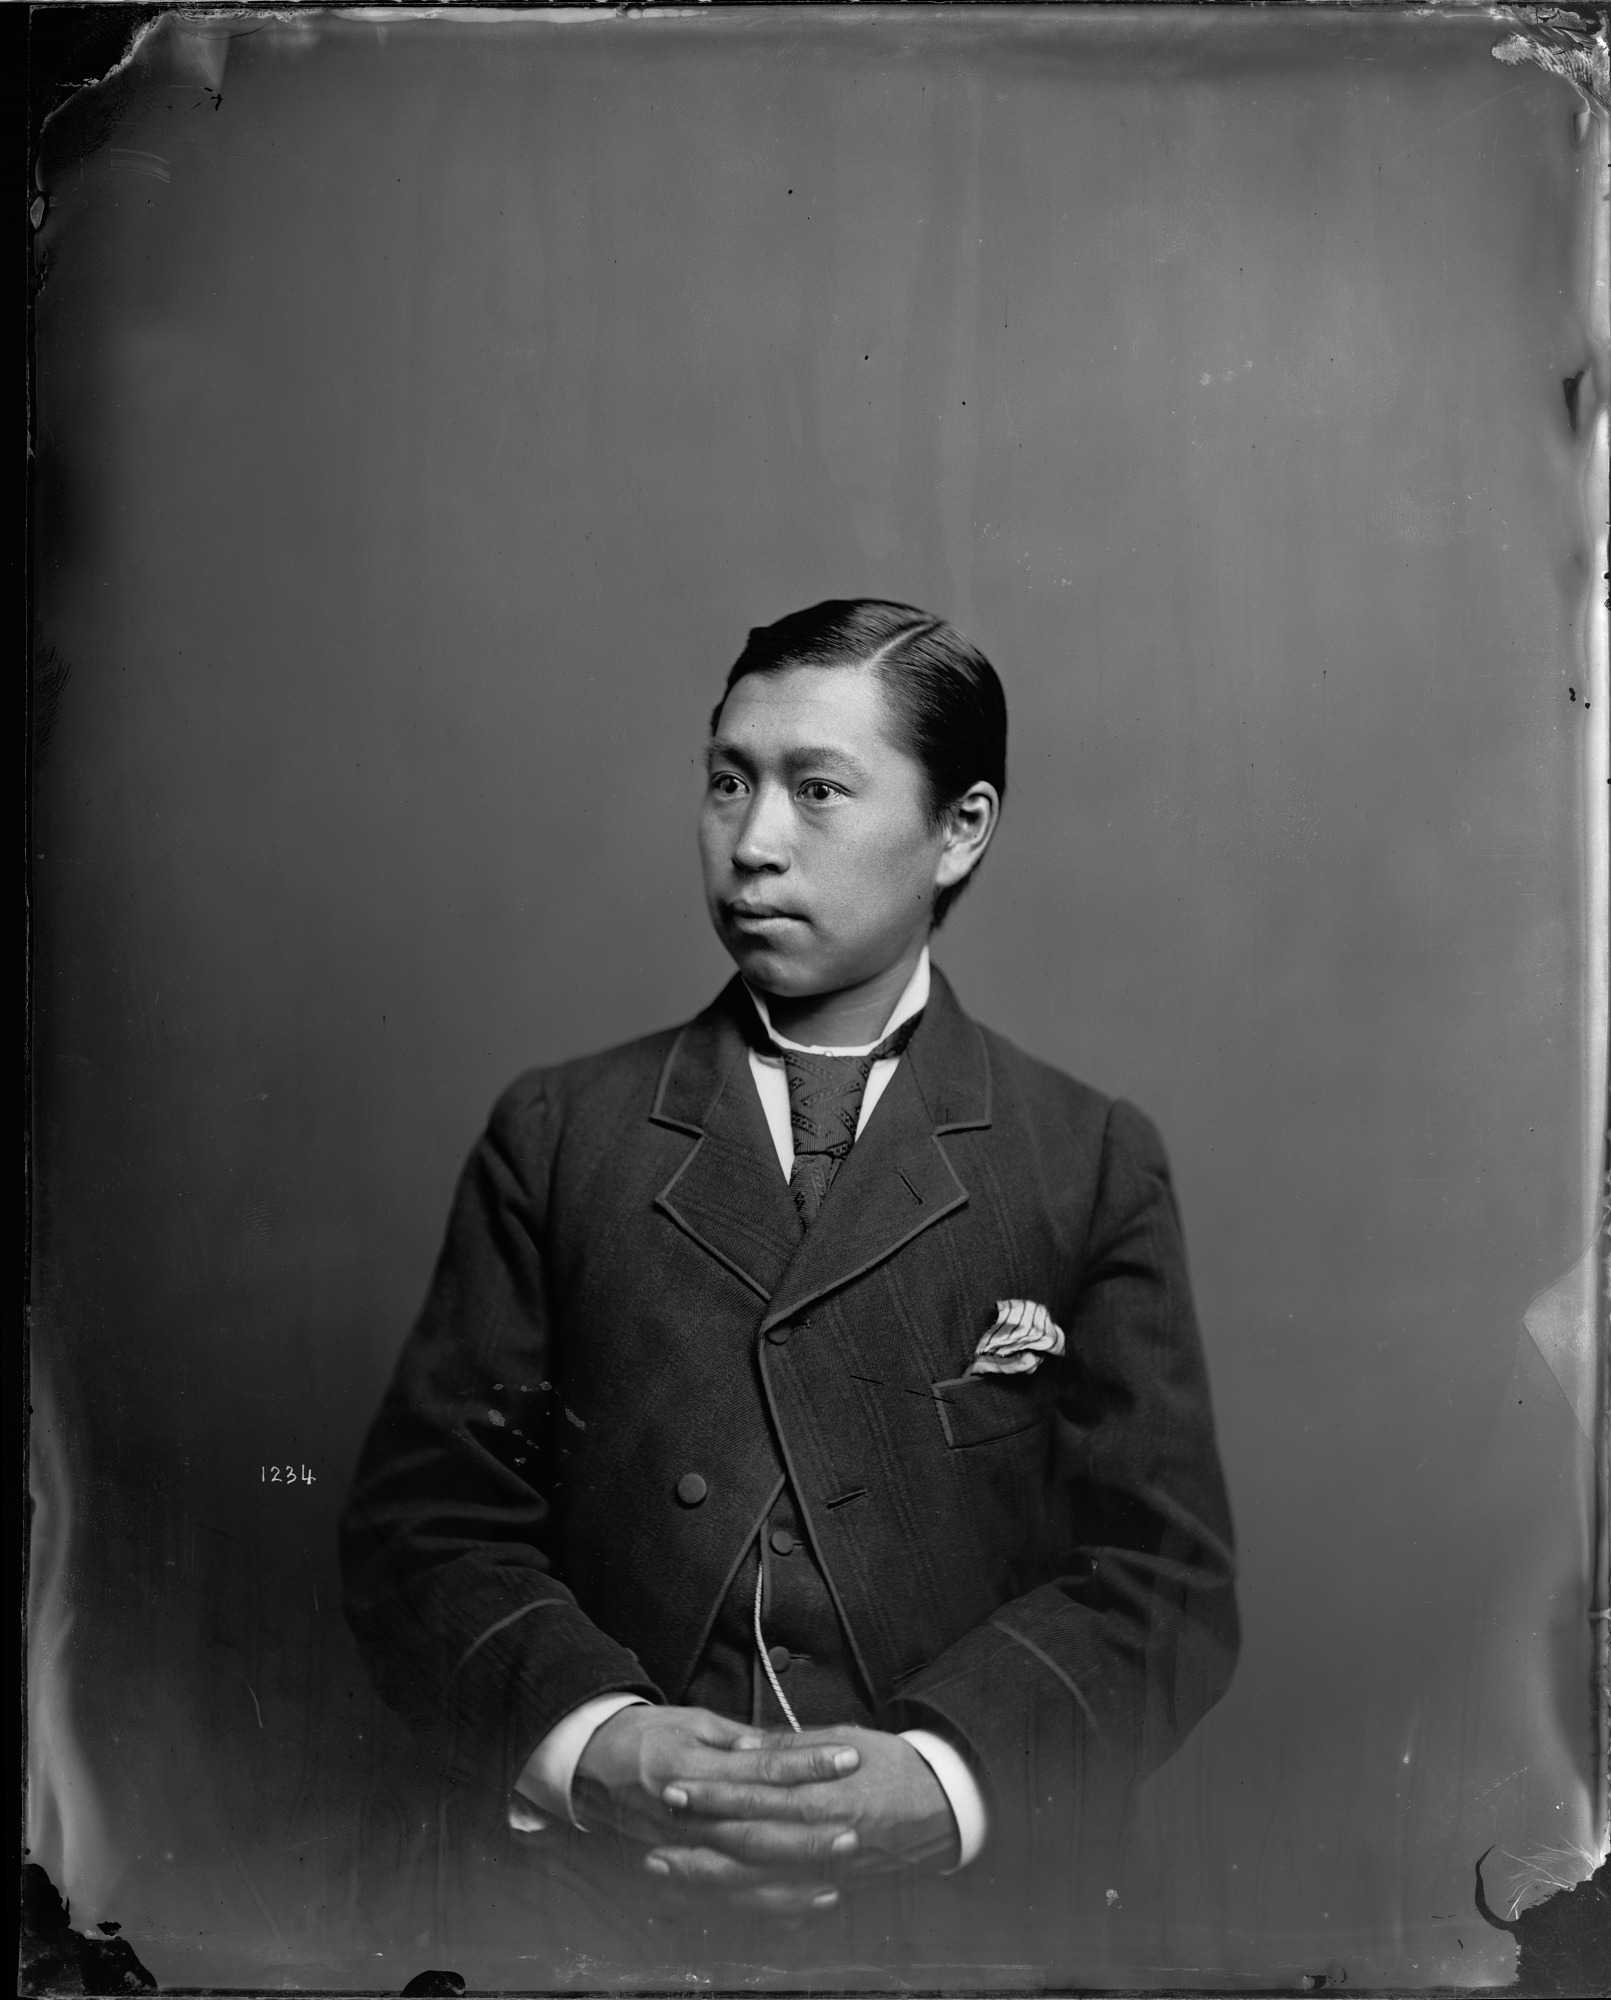 Portrait of Unidentified Man, 1880, Smithsonian Institution Archives, SIA Acc. 11-006 [MAH-1234].